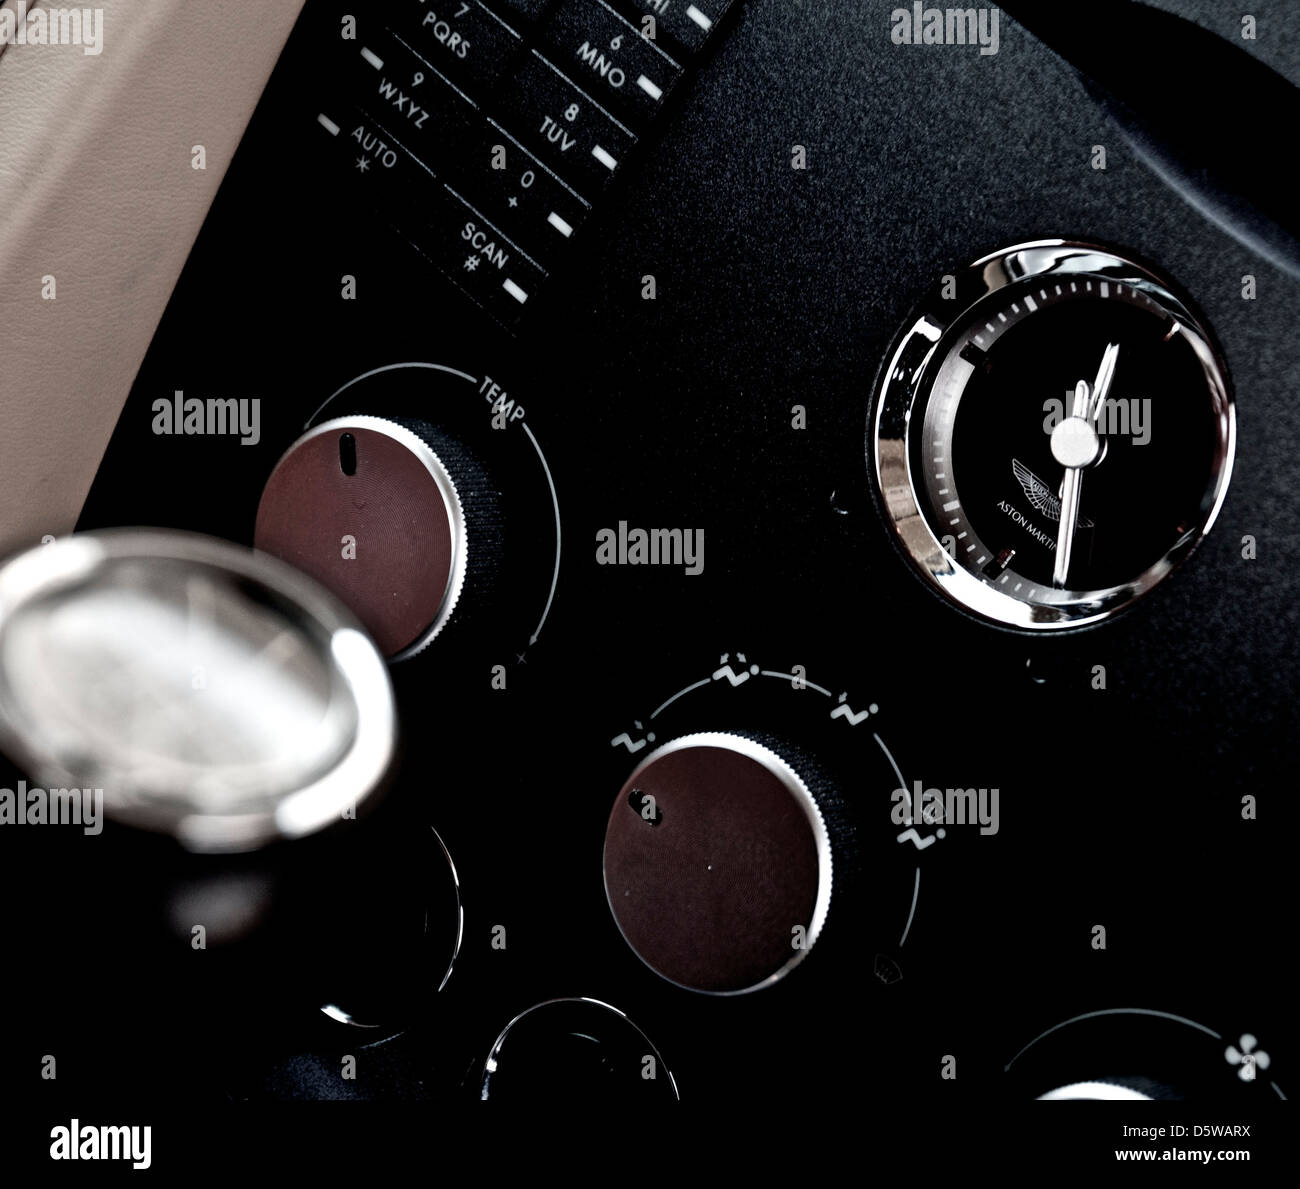 aston martin dash board showing the clock gear lever and some controls - Stock Image